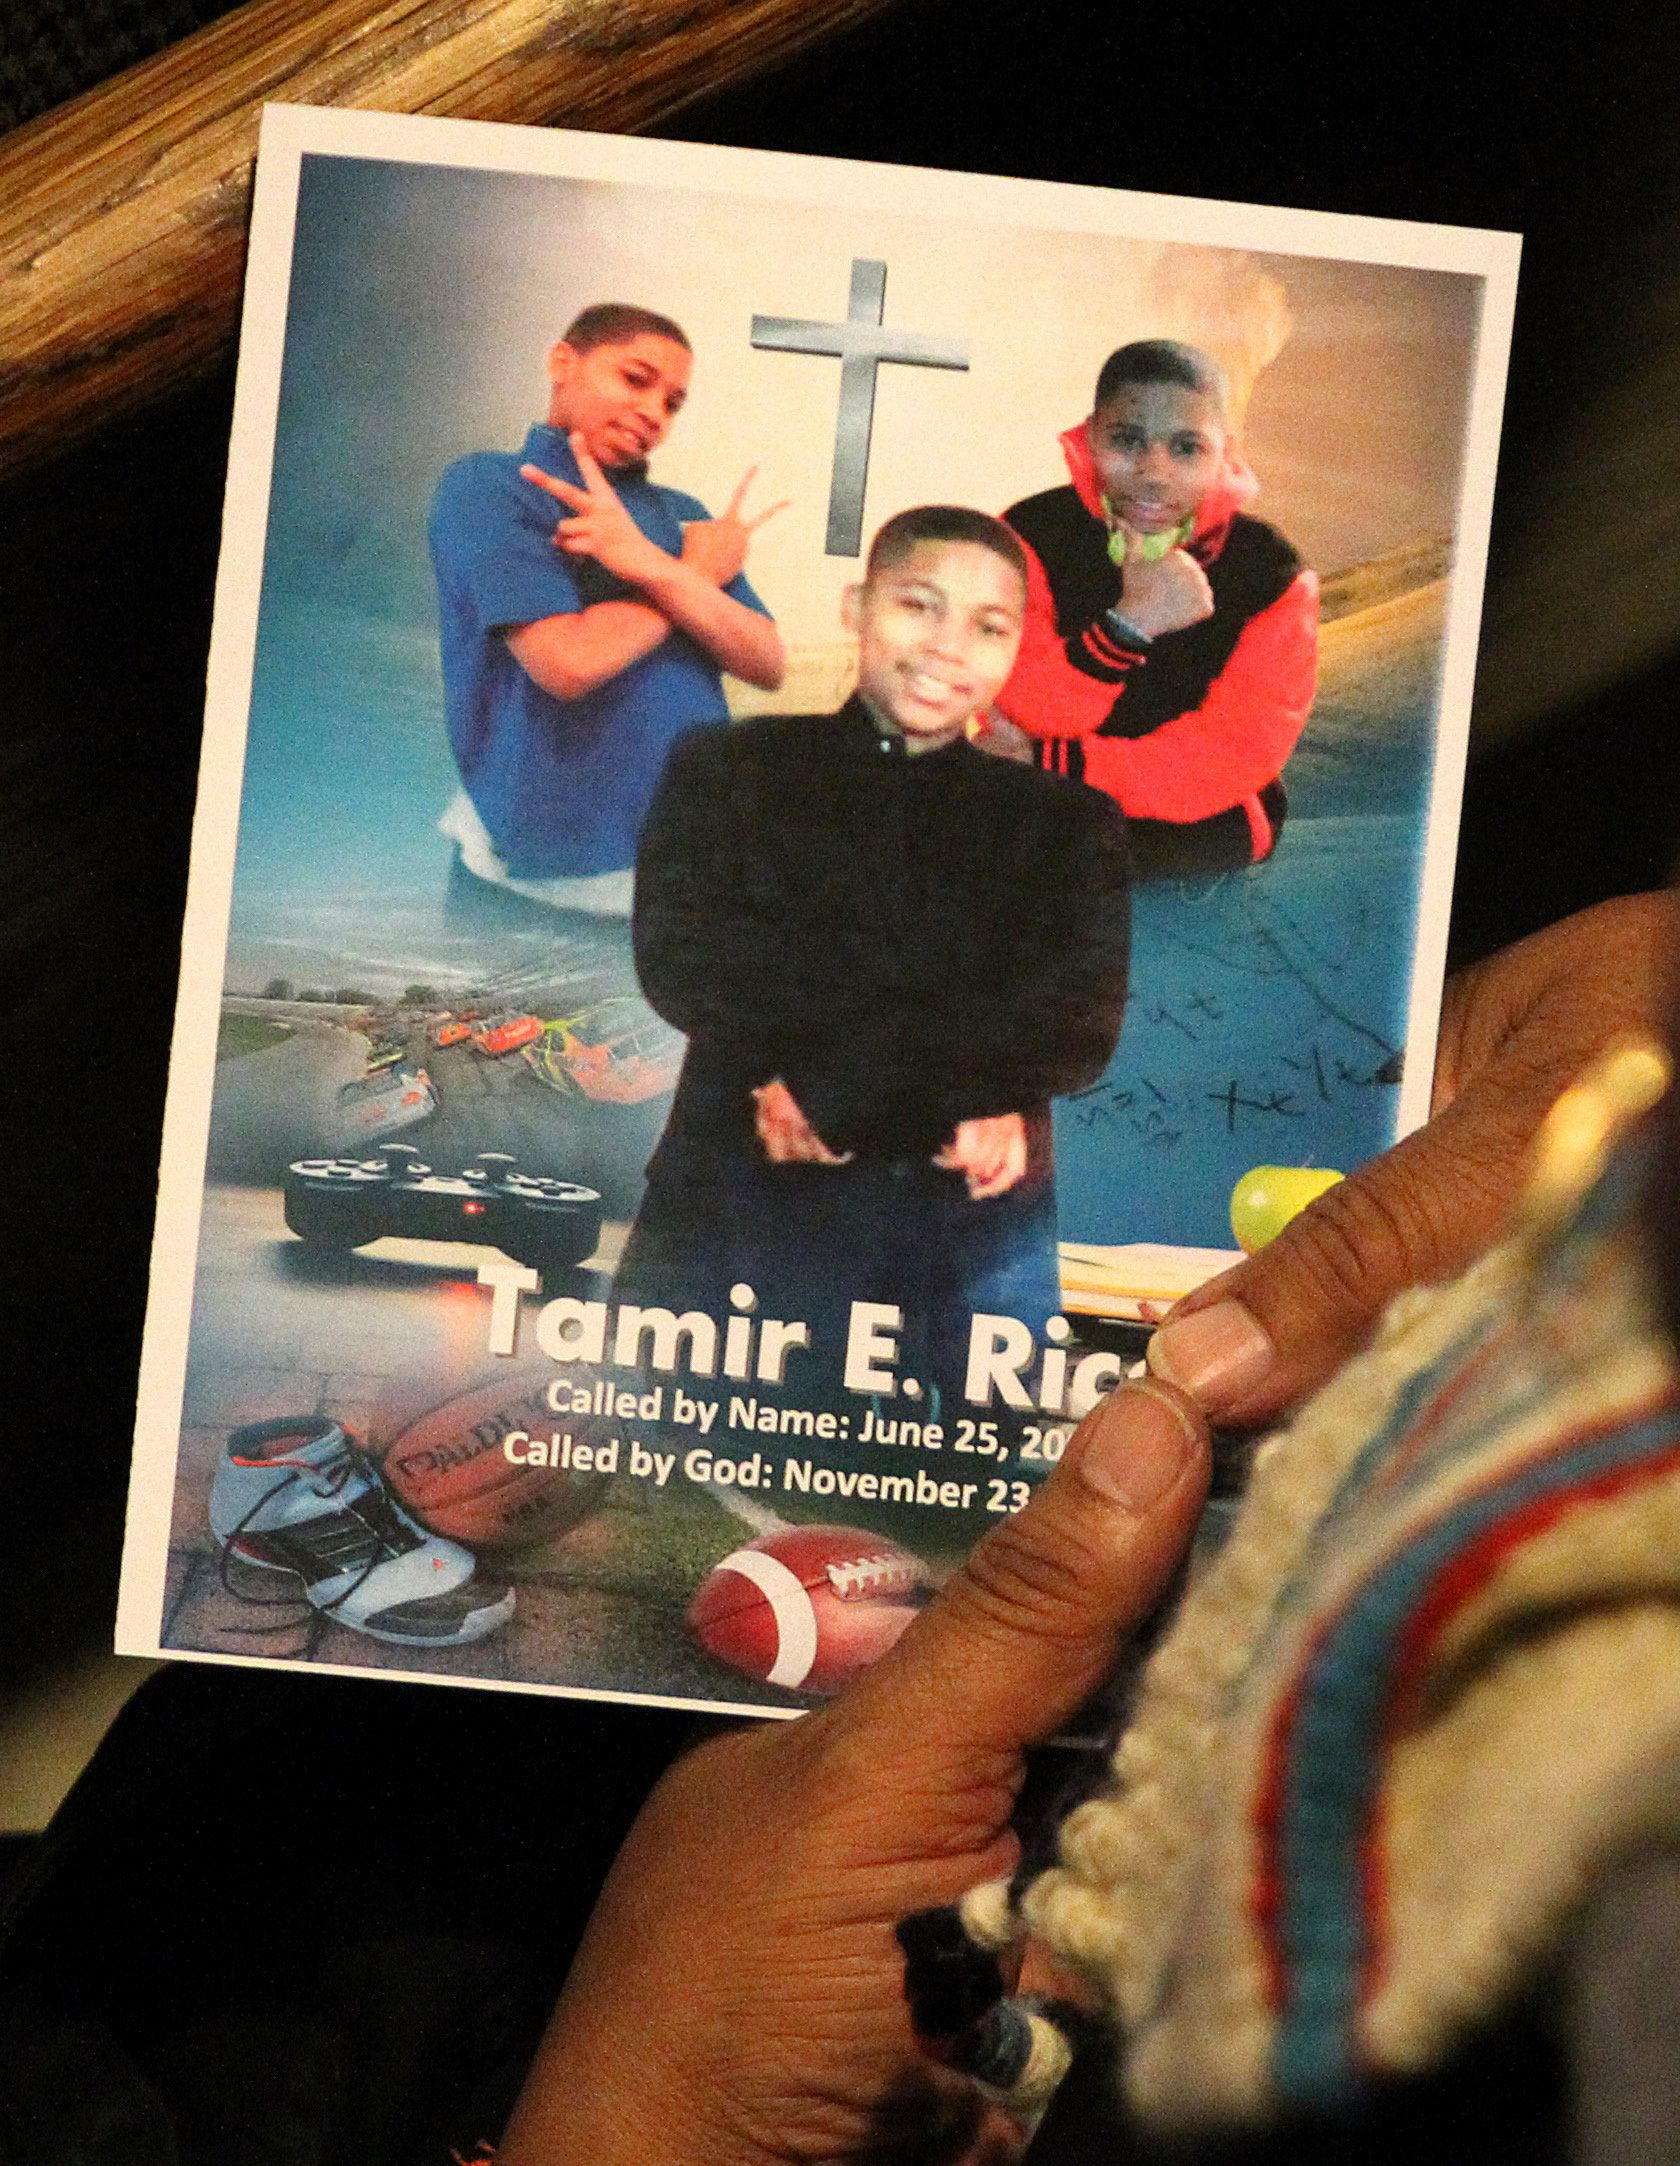 A mourner looks at a program during the funeral service for Tamir Rice in Cleveland on Dec. 3, 2014.